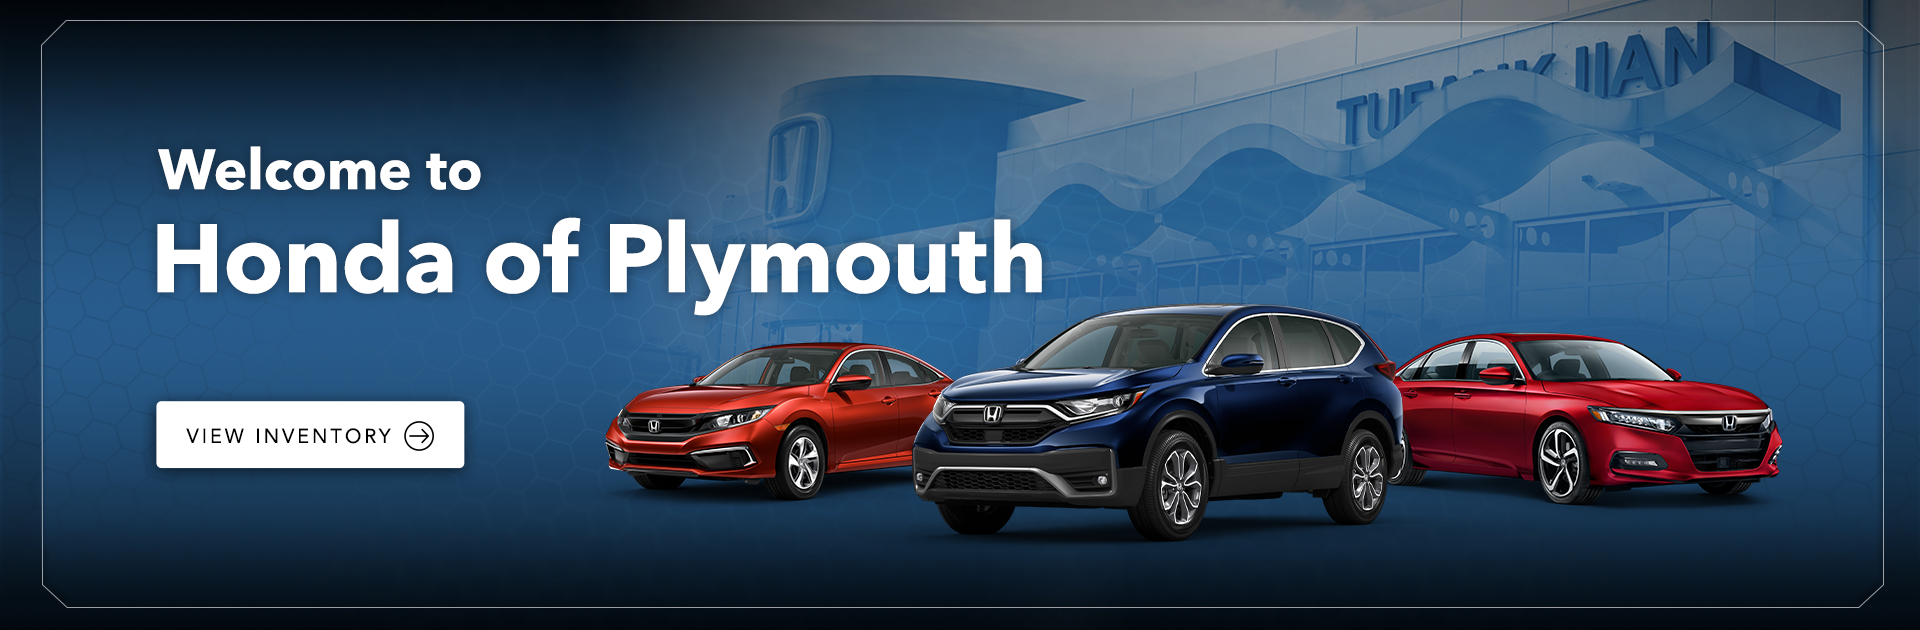 Hondaplymouth Hpbanner Welcome 1400x514 Dec2020